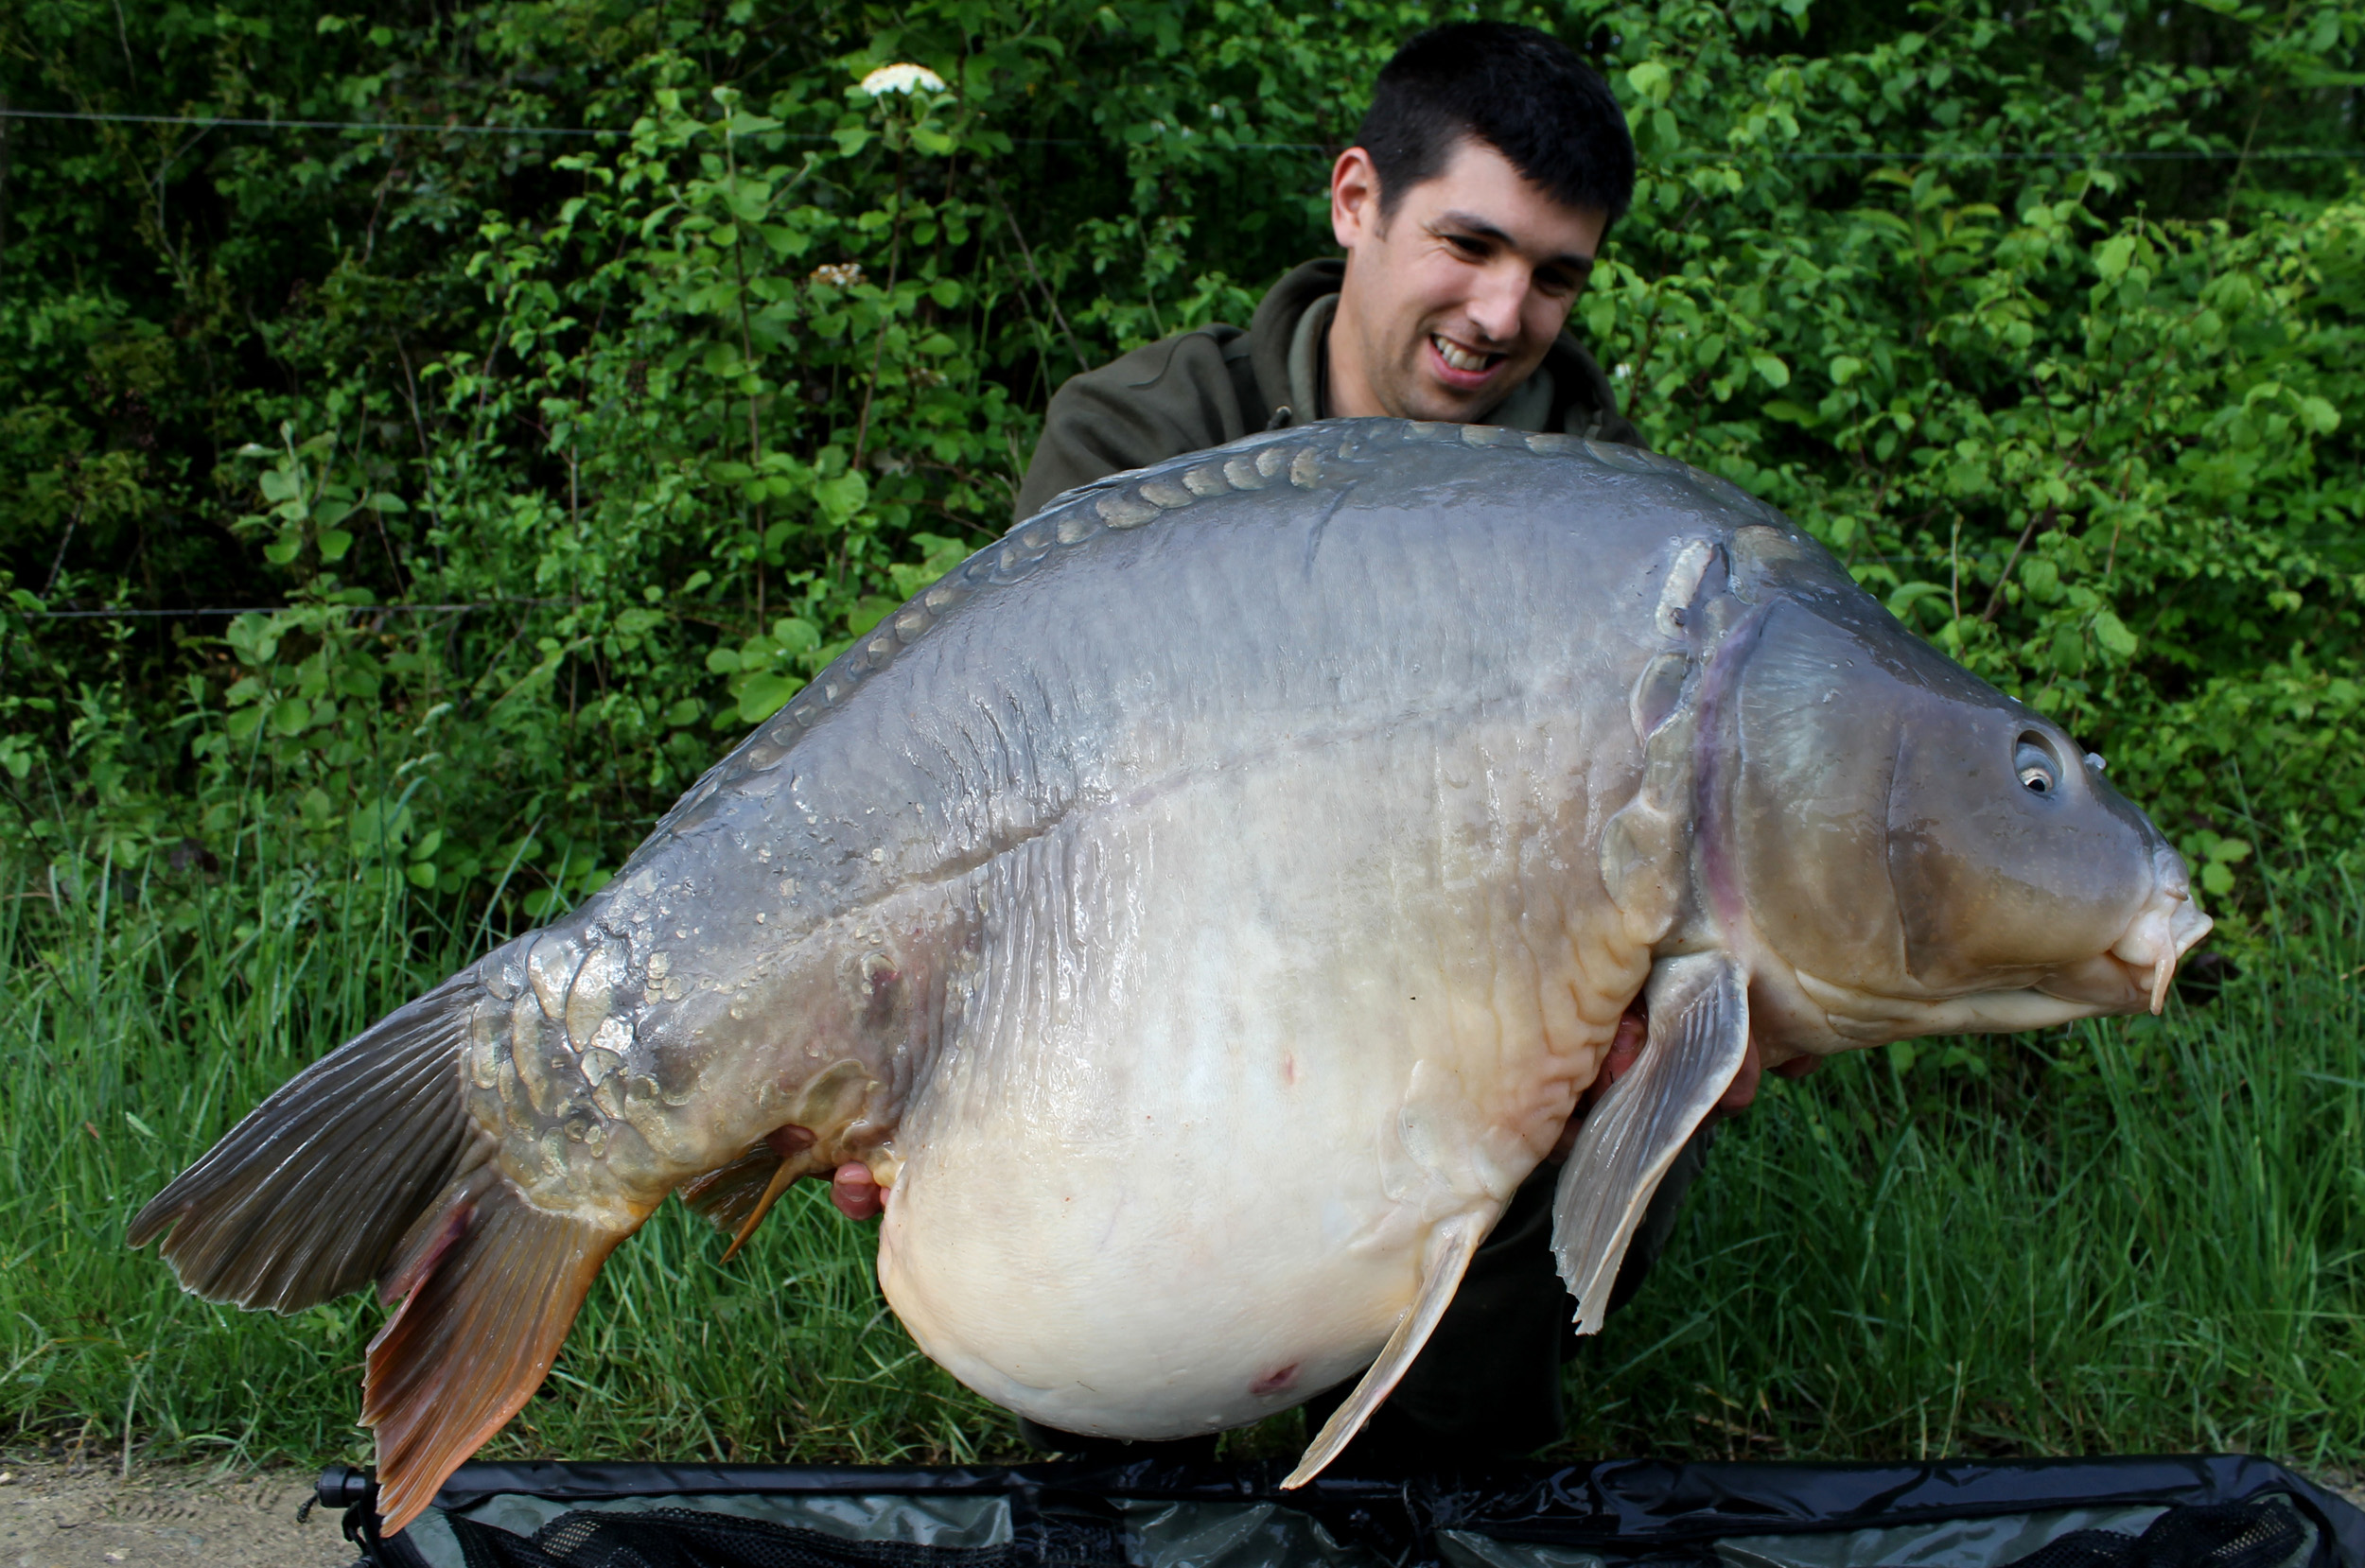 http://starbaits.com/fichiers/images/team/gallery/DUCERE_Cedric/11-DUCERE-CEDRIC.jpg